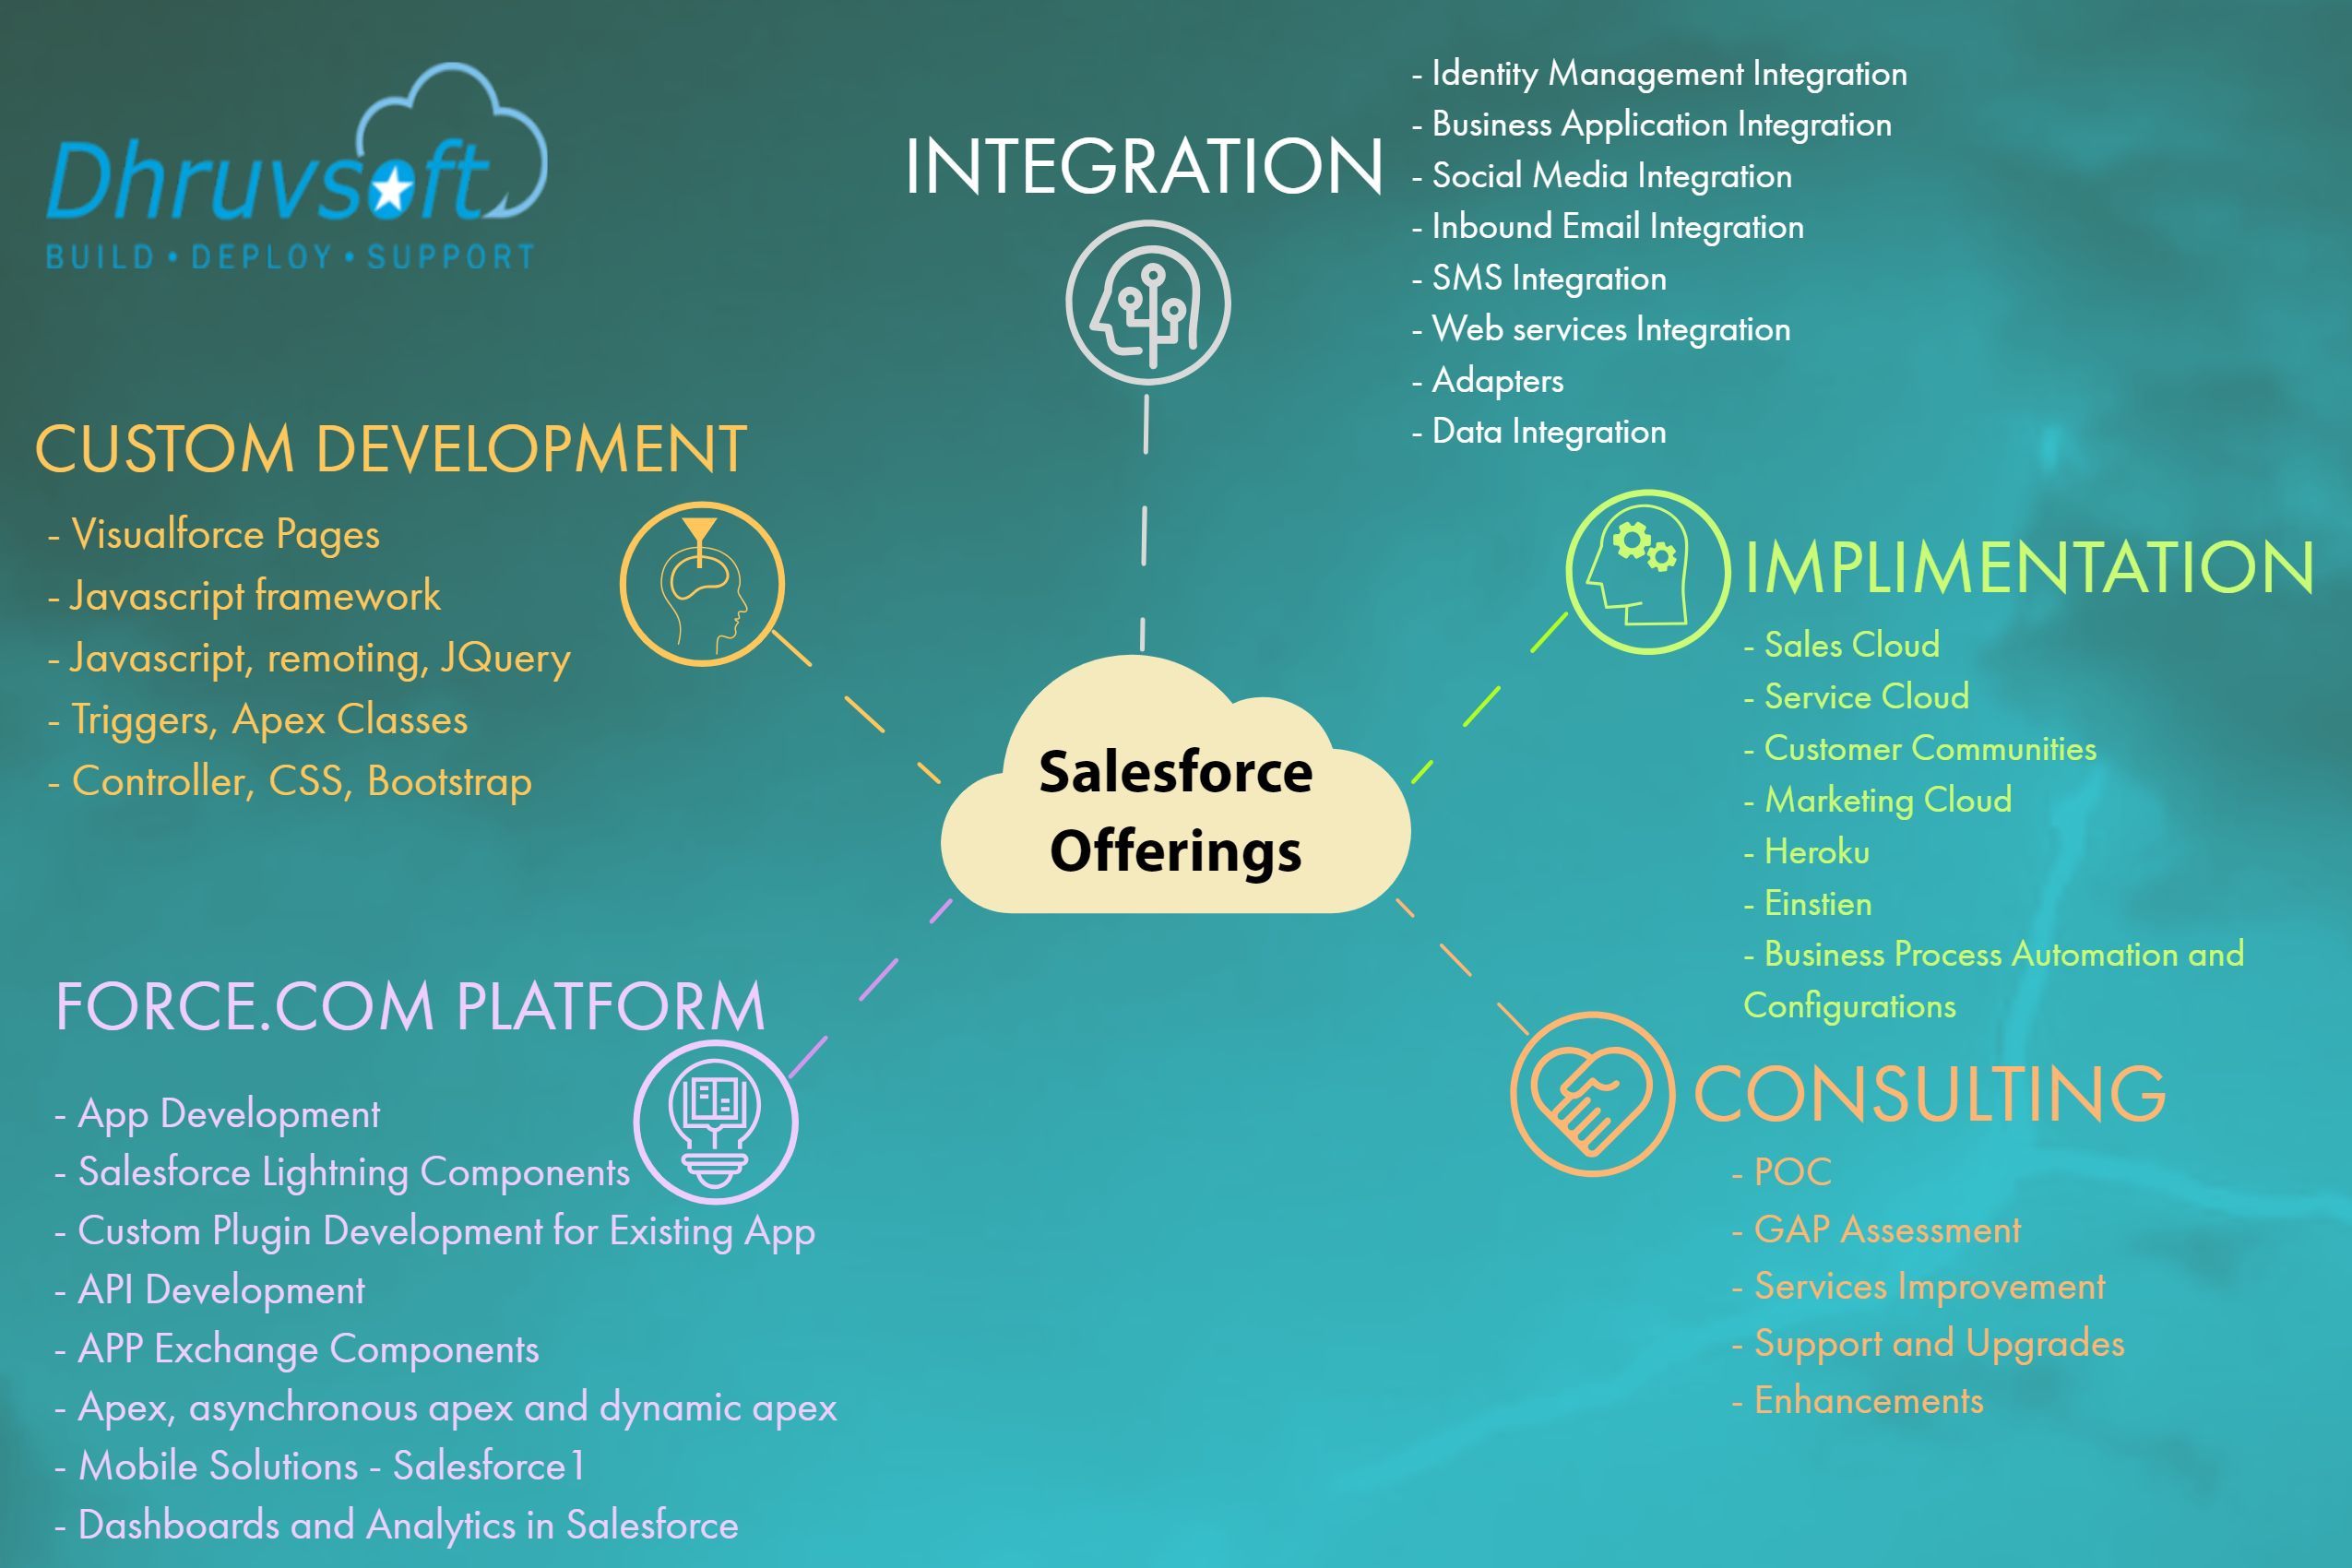 Salesforce Com Integration Services Offered By Dhruvsoft Include